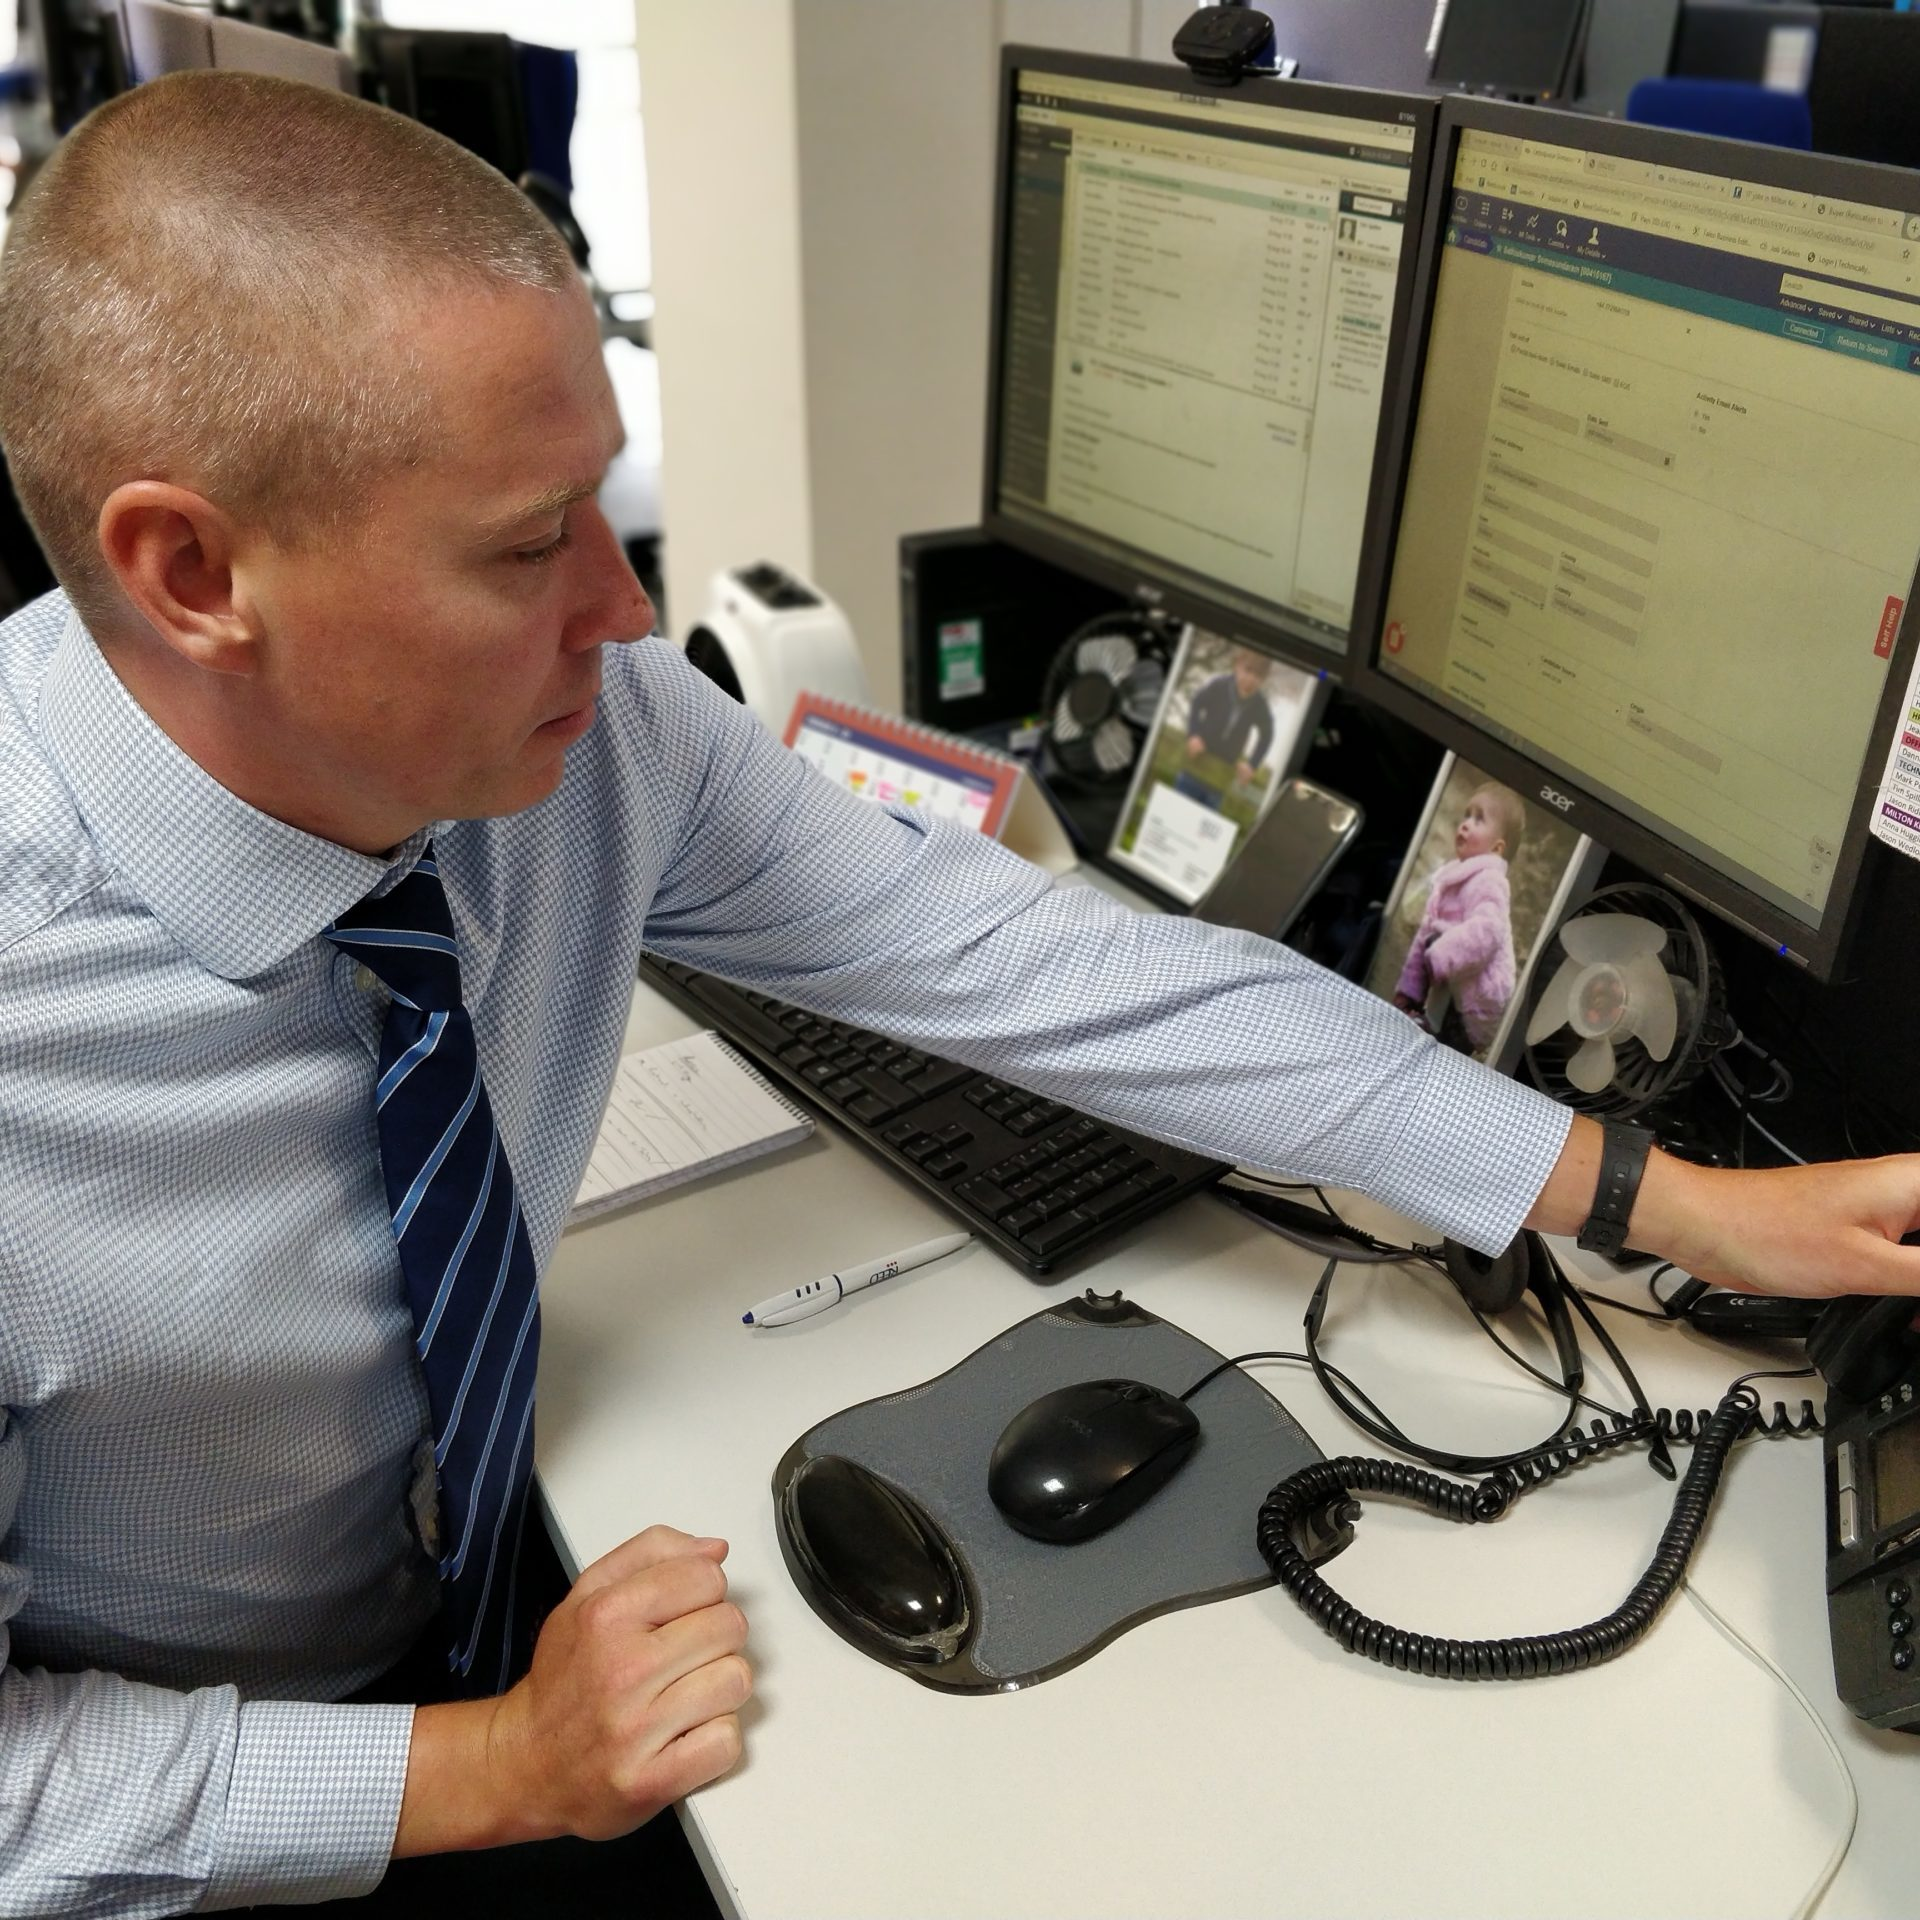 St Albans male recruitment consultant putting down phone